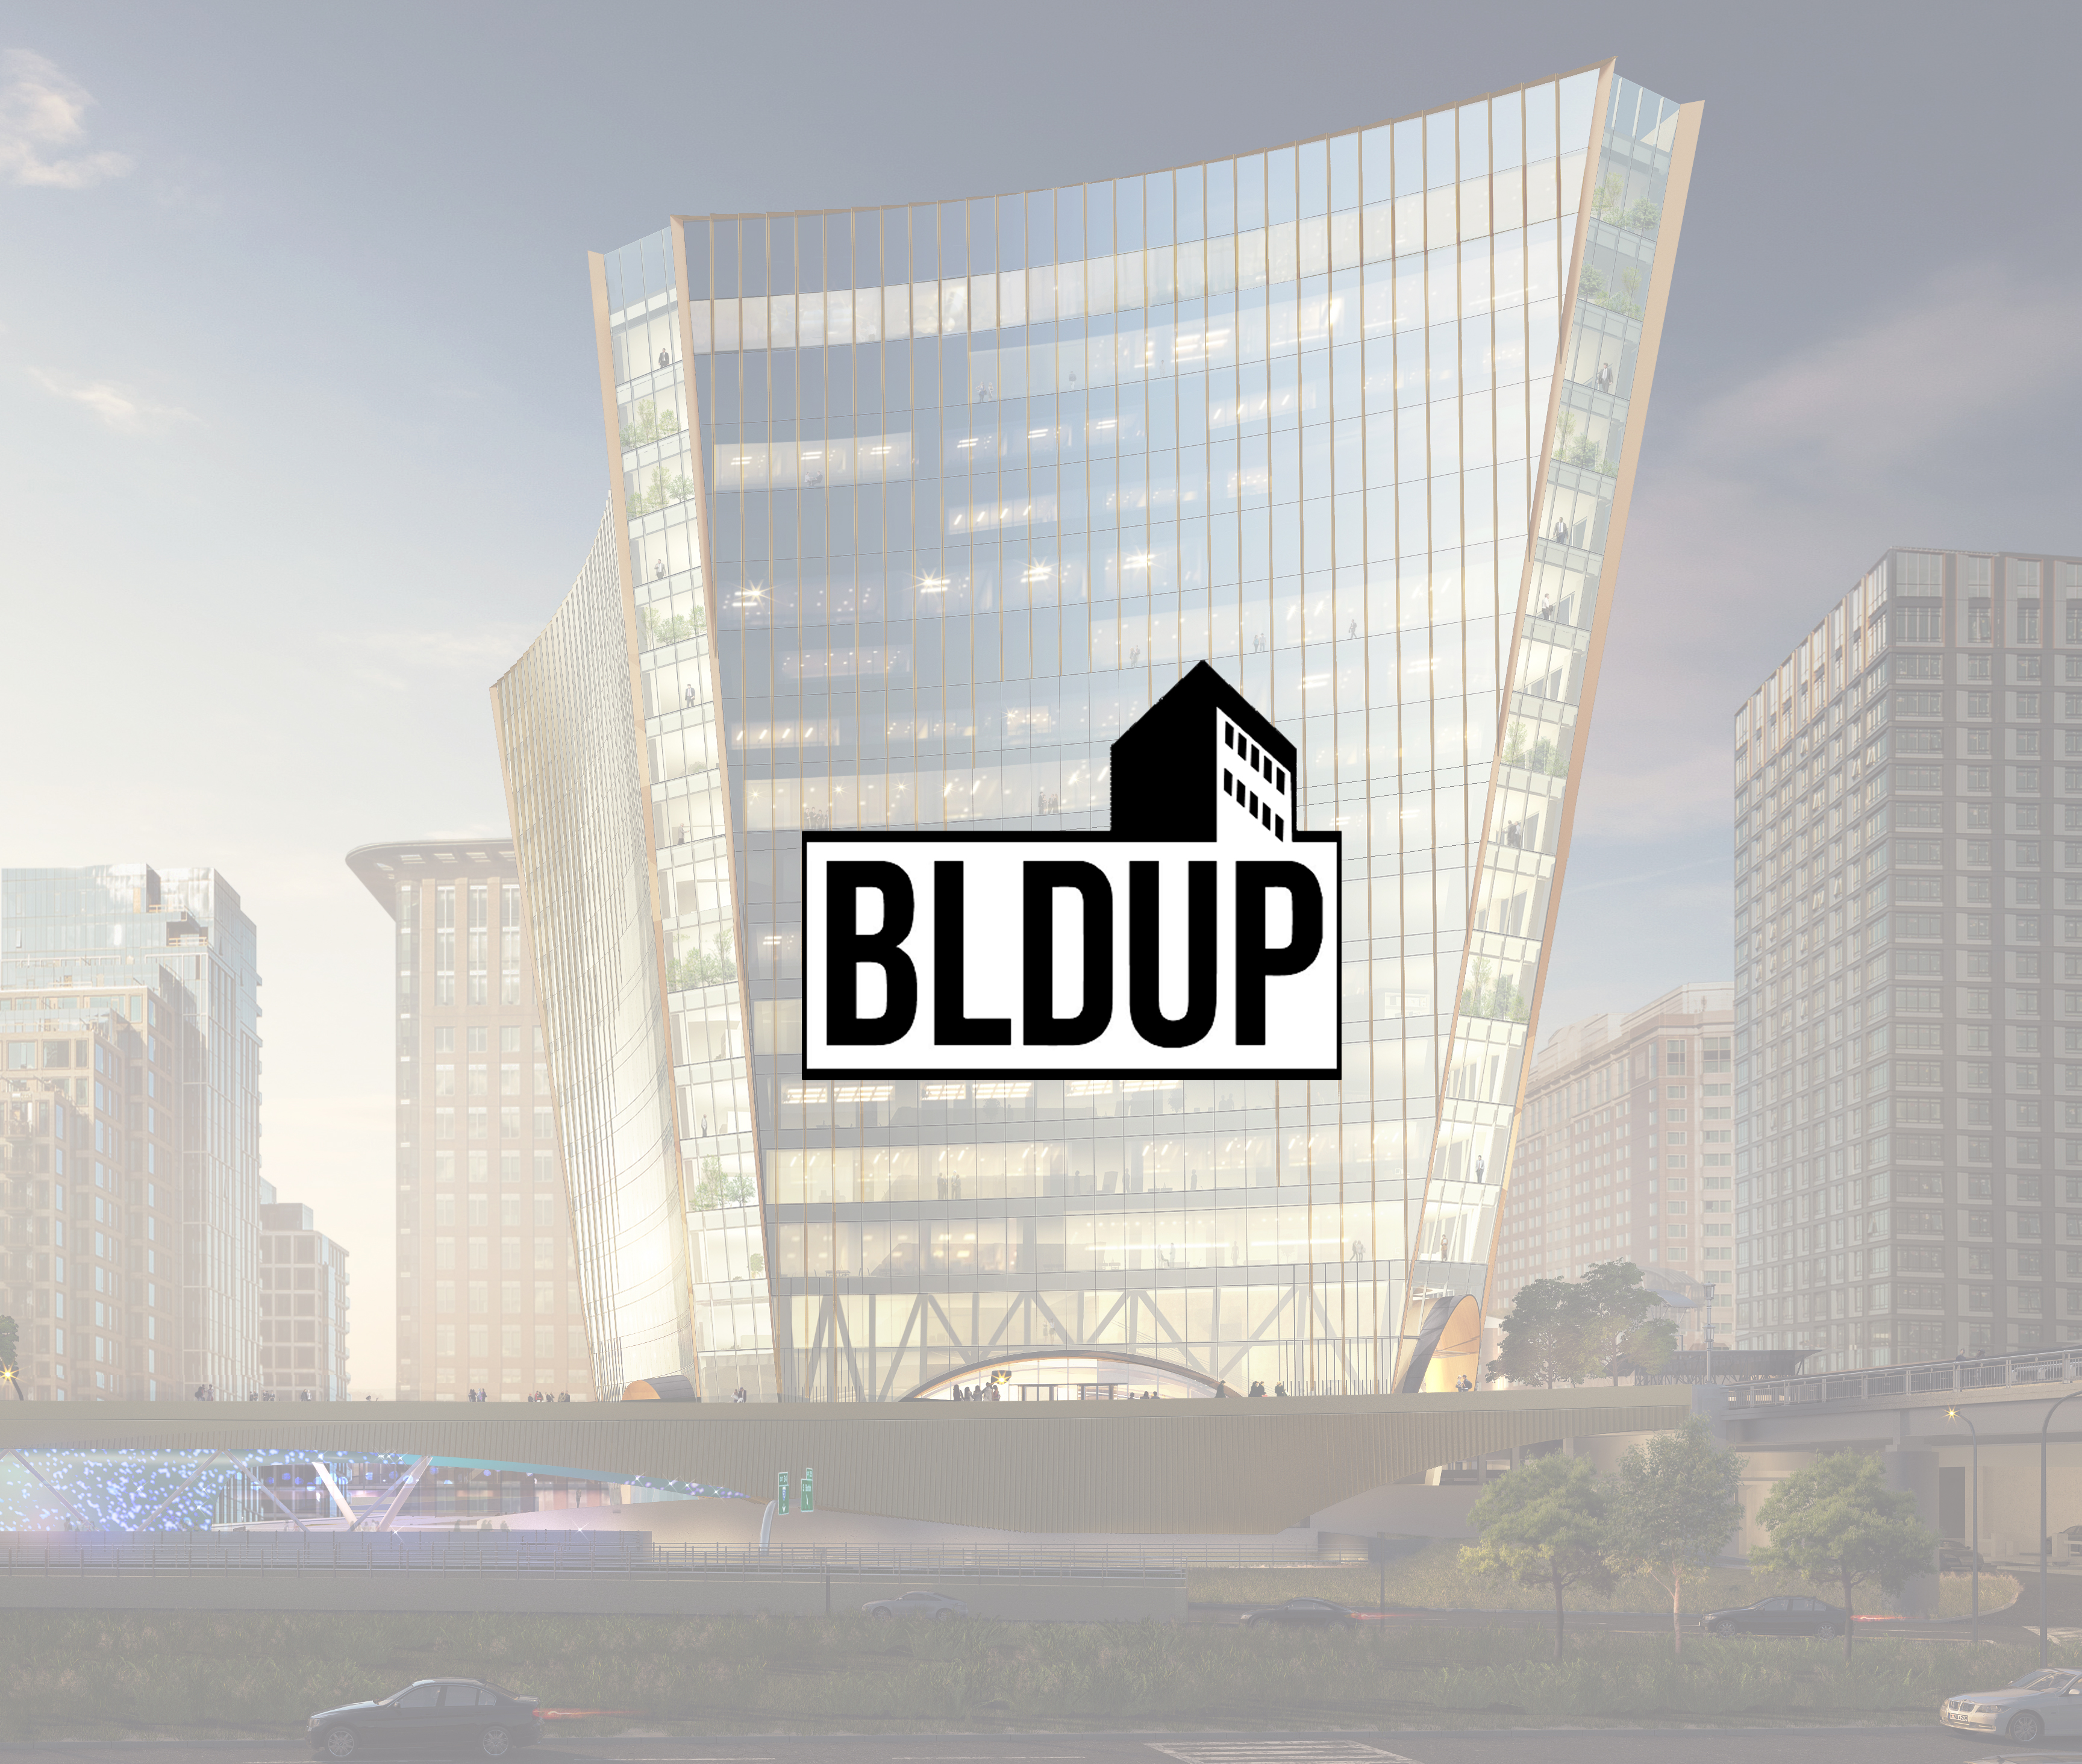 BLDUP: Construction to Commence on Seaport's 10 World Trade in Q4 2021